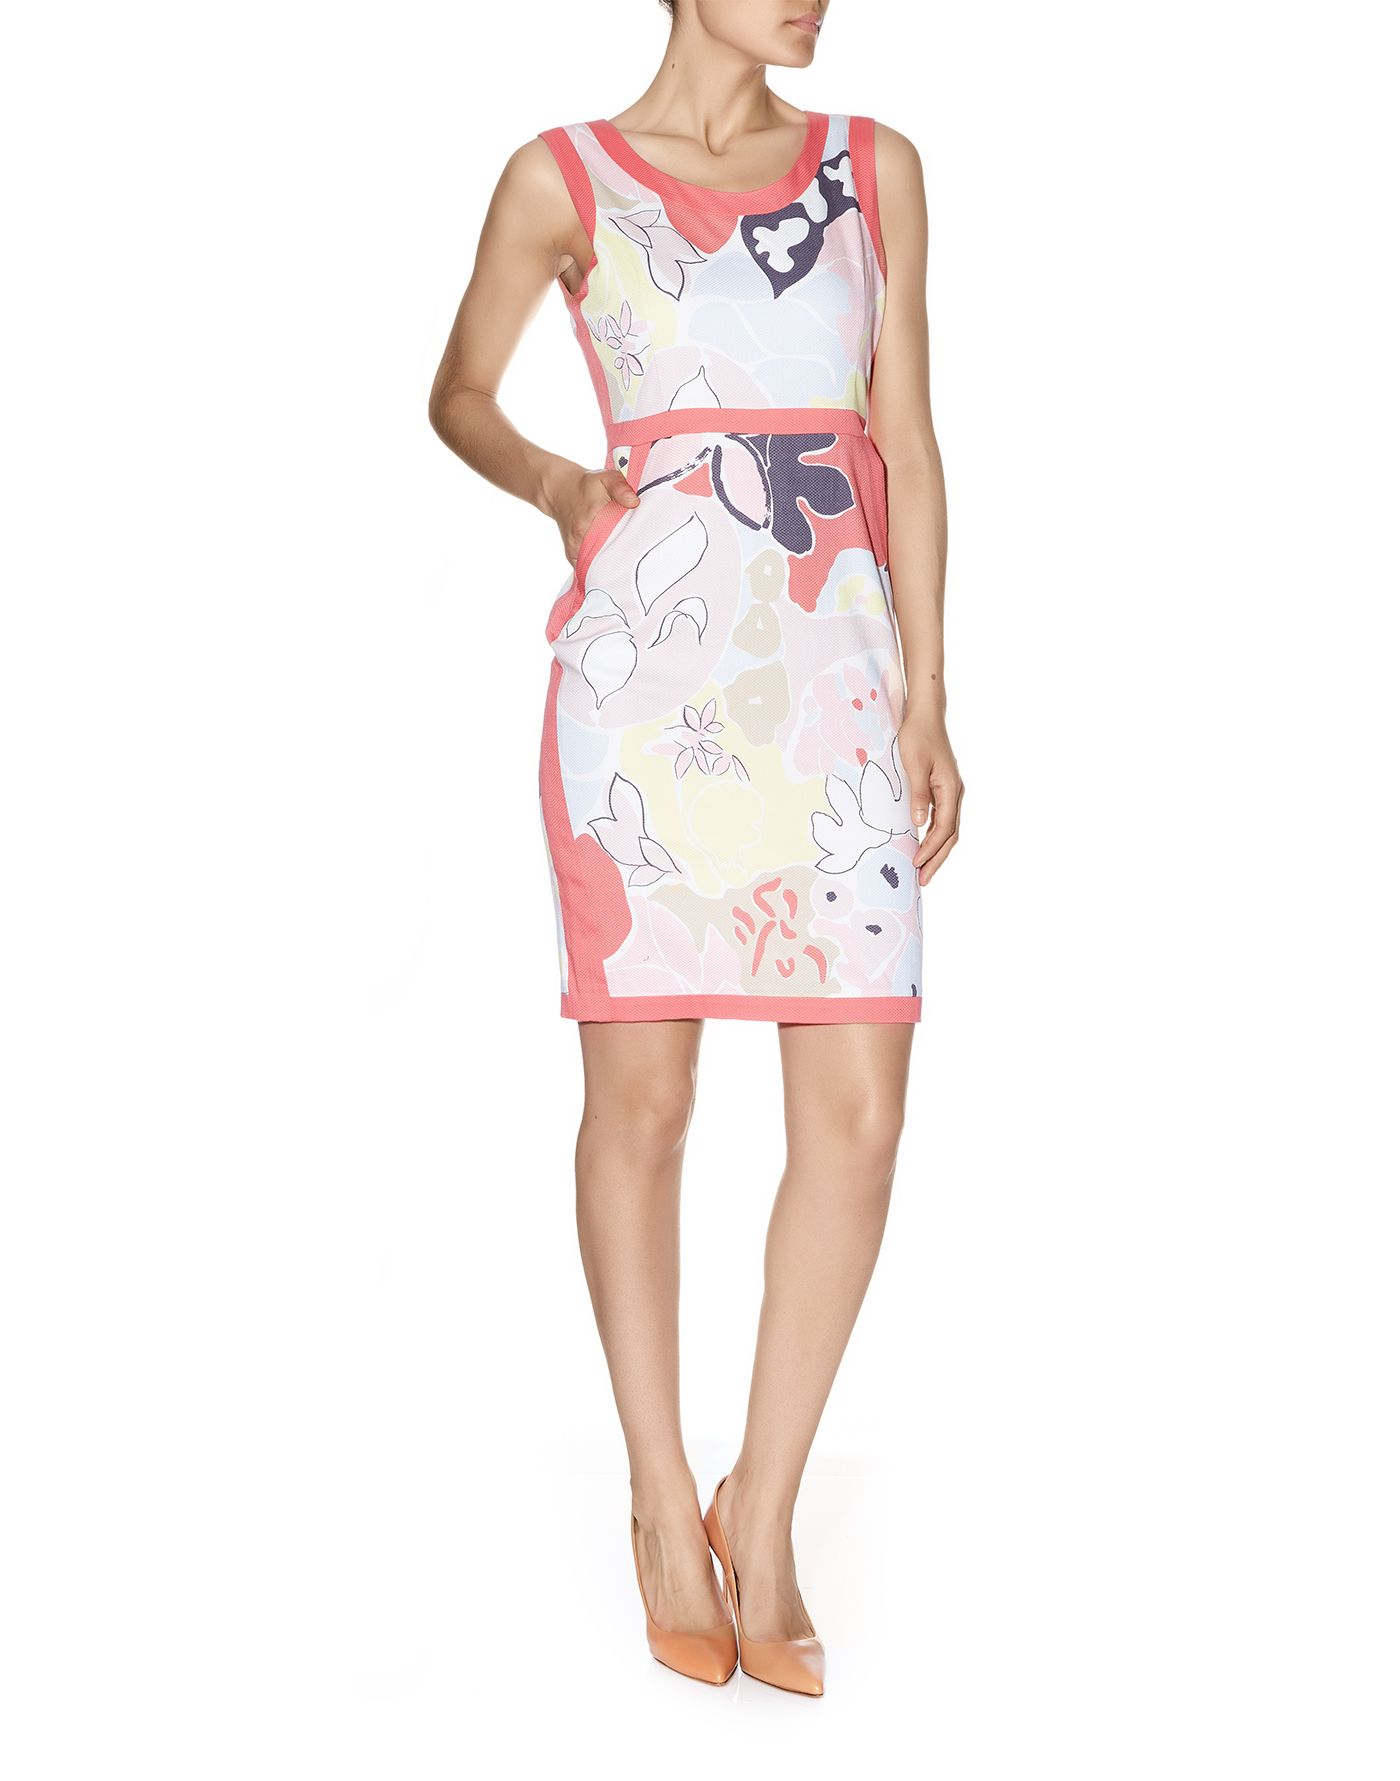 Matisse Print Contrast Dress